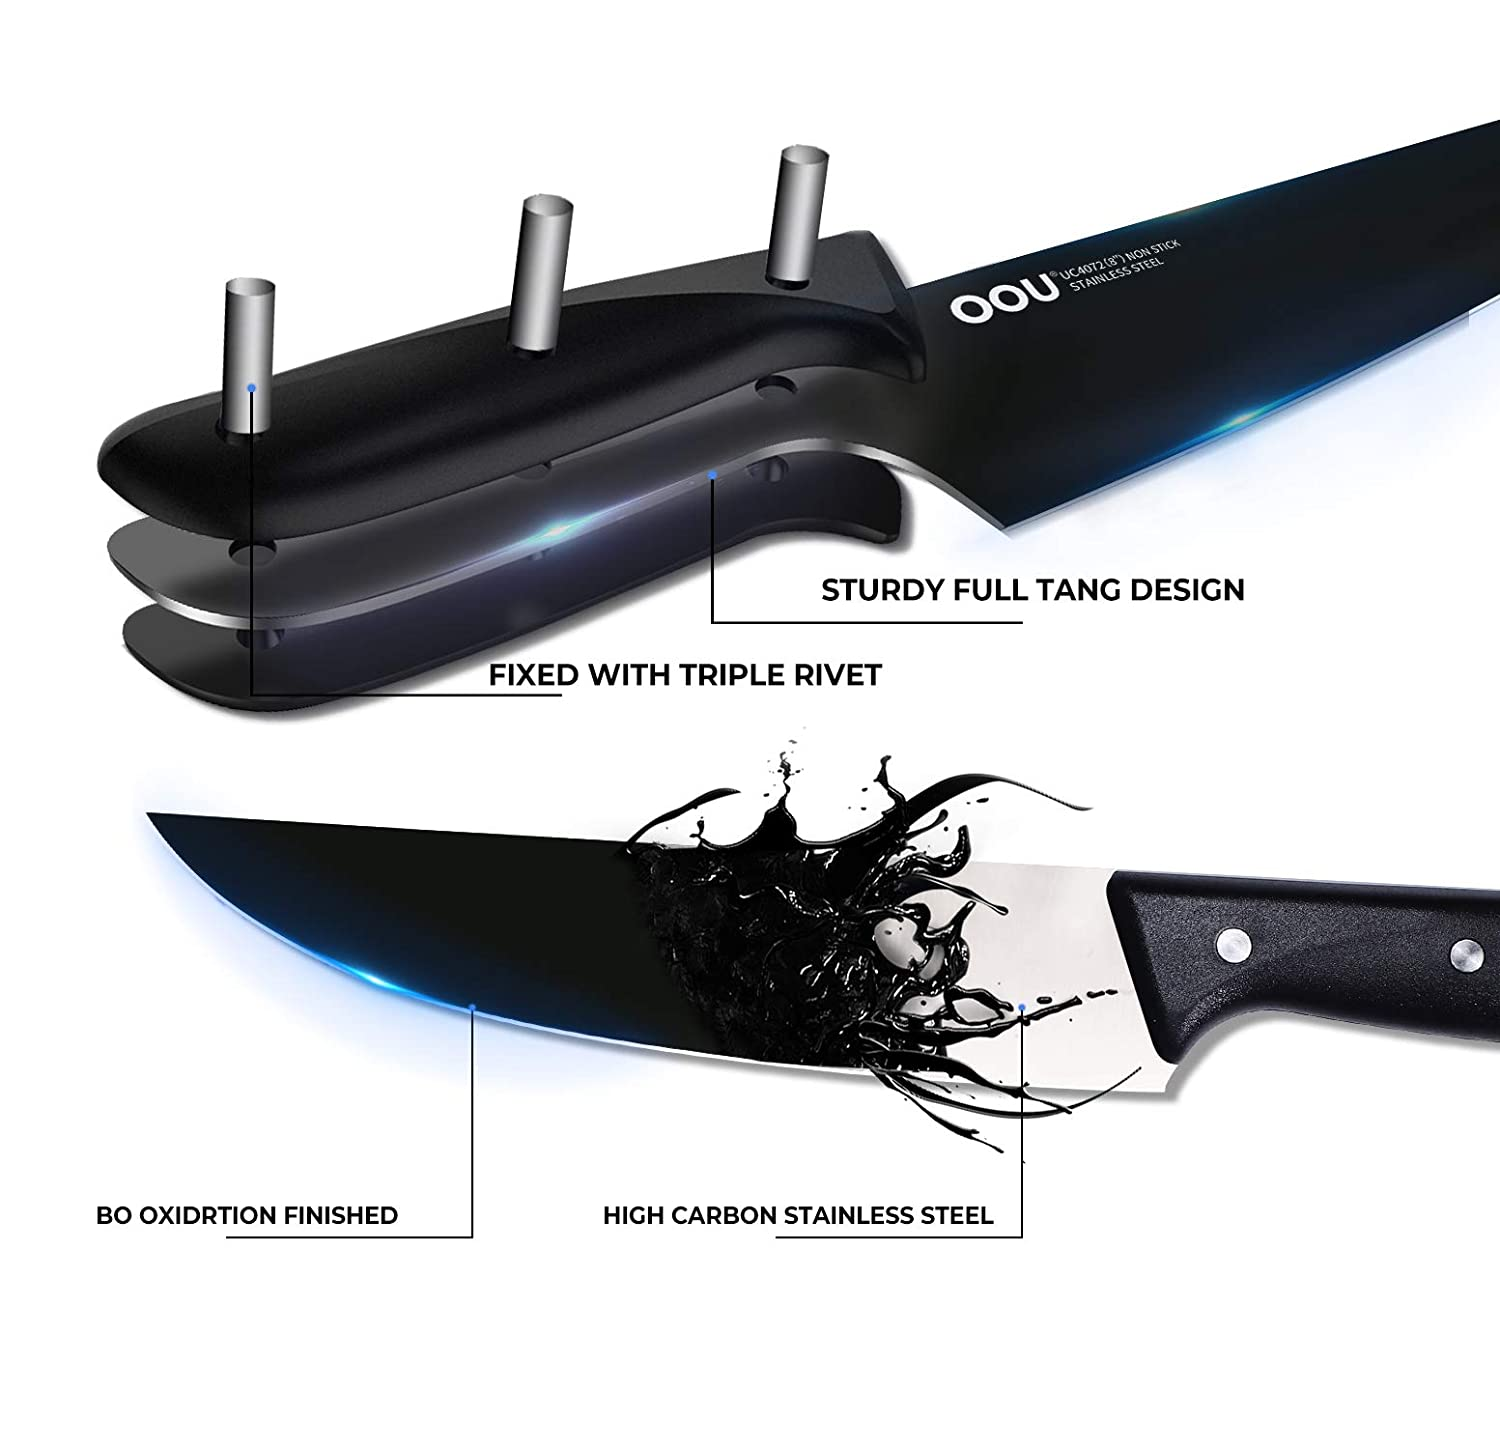 Knife Set - OOU 7 Kitchen Knife Set with Block, Stainless Steel Kitchen Knives Ultra Sharp - Full Tang with Triple Rivets, Acrylic Stand, Ergonomic ...